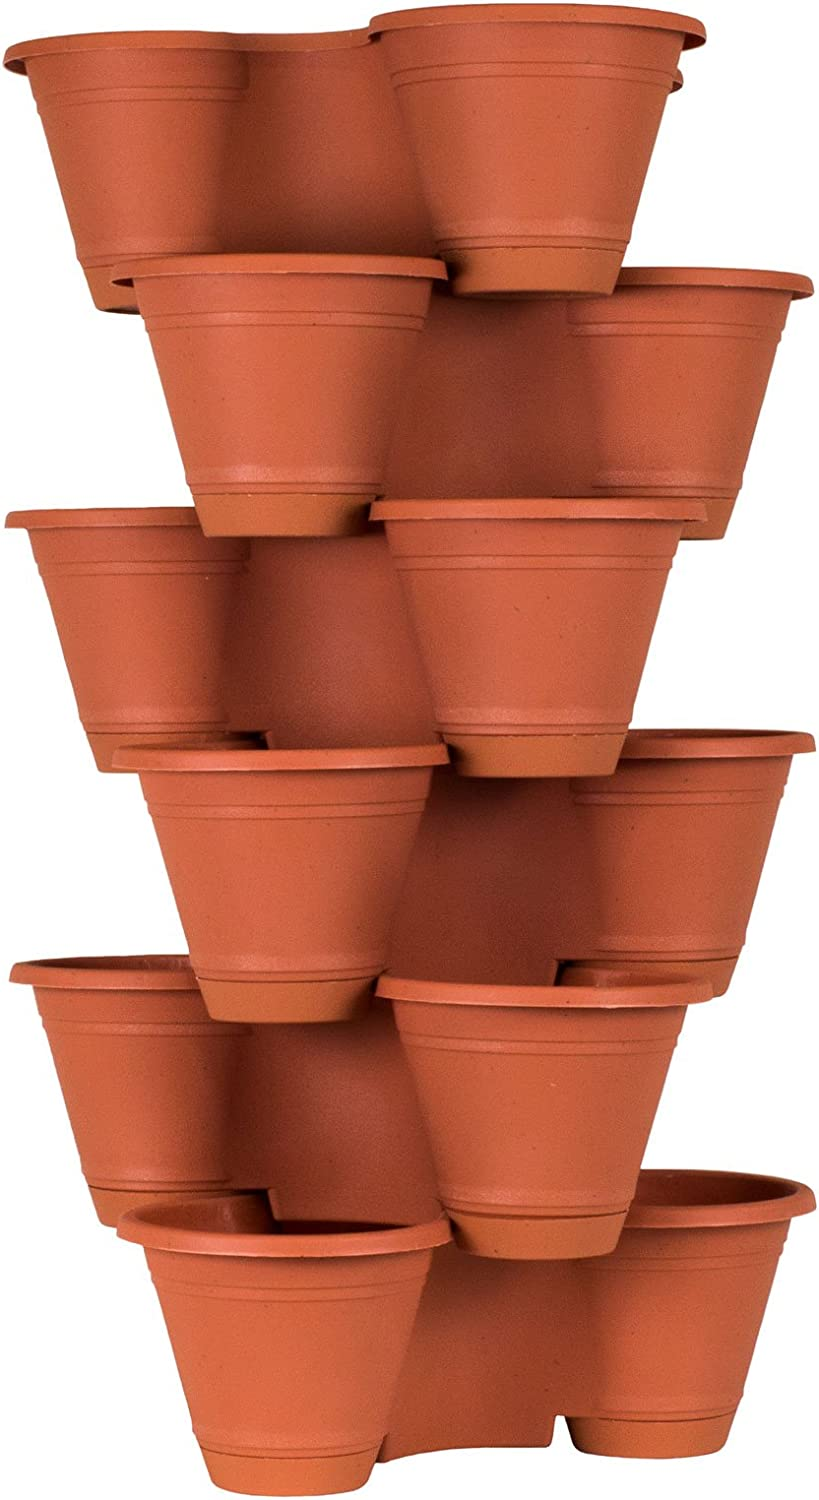 Vegetables Flowers+ 4 or 5 Tier Stacking Planter with 6 Pockets for Herbs 3